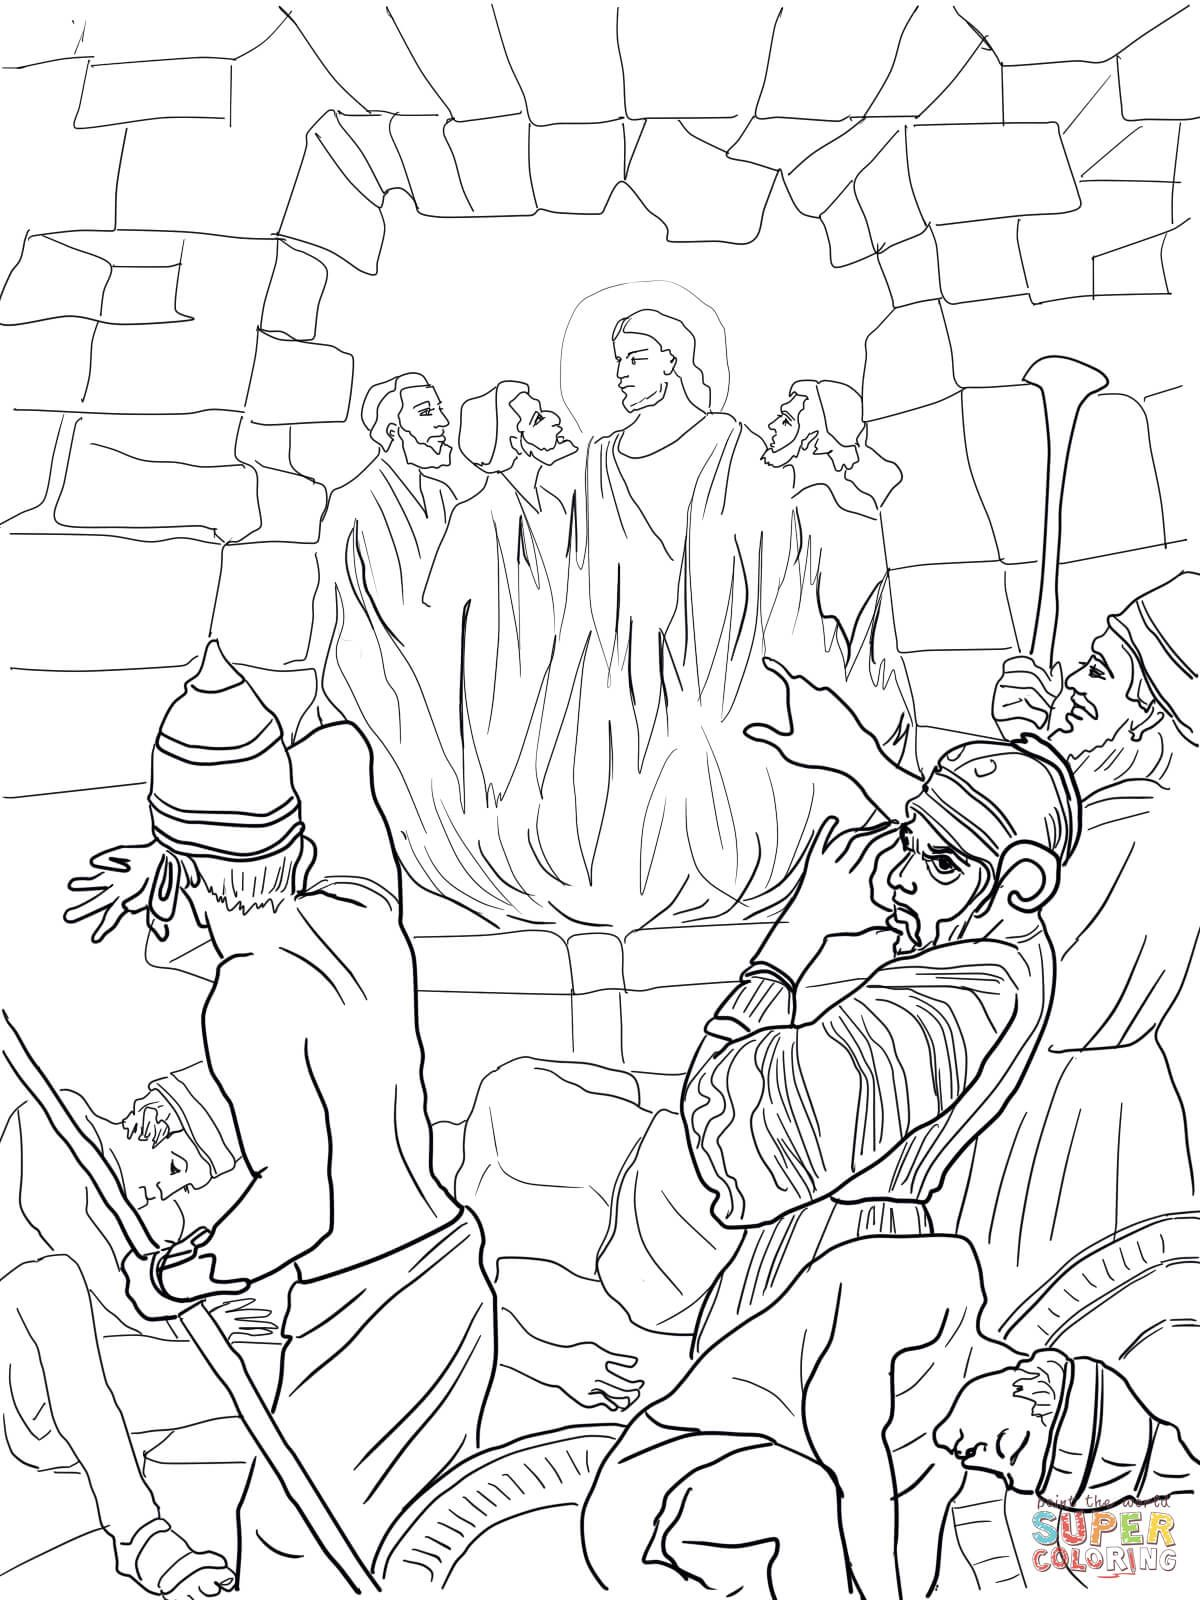 Shadrach Meshach And Abednego In The Fiery Furnace Super Shadrach Meshach And Abednego Coloring Page